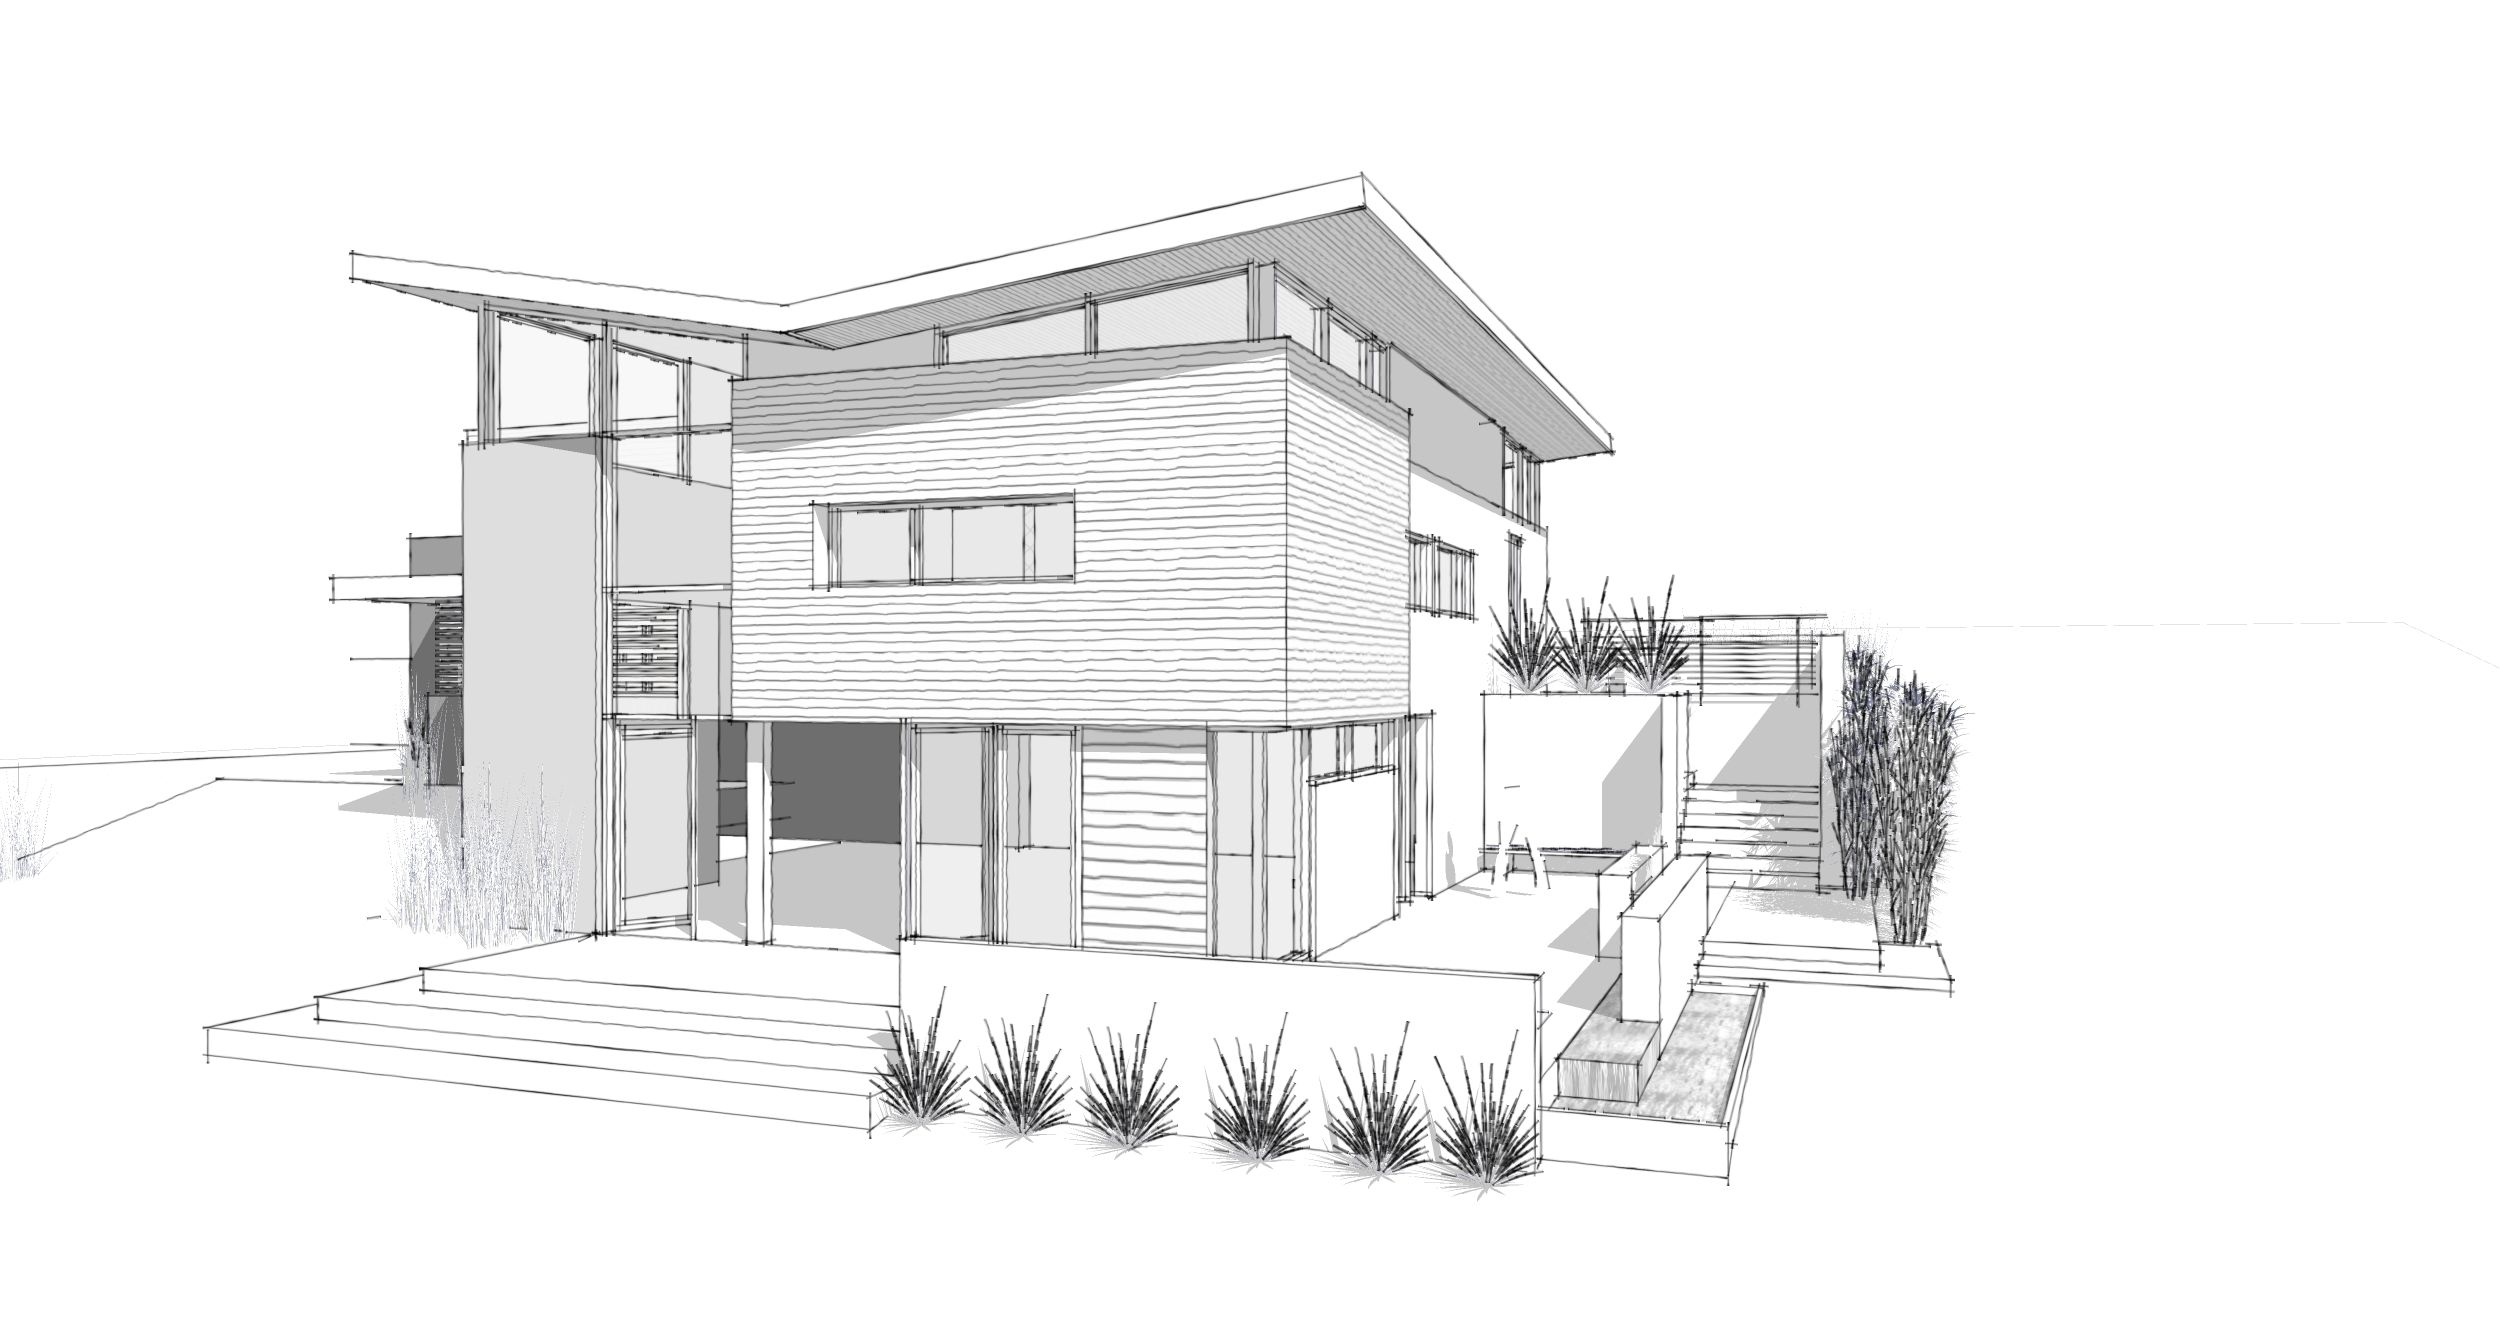 Modern home architecture sketches design ideas 13435 for Architectural design house plans